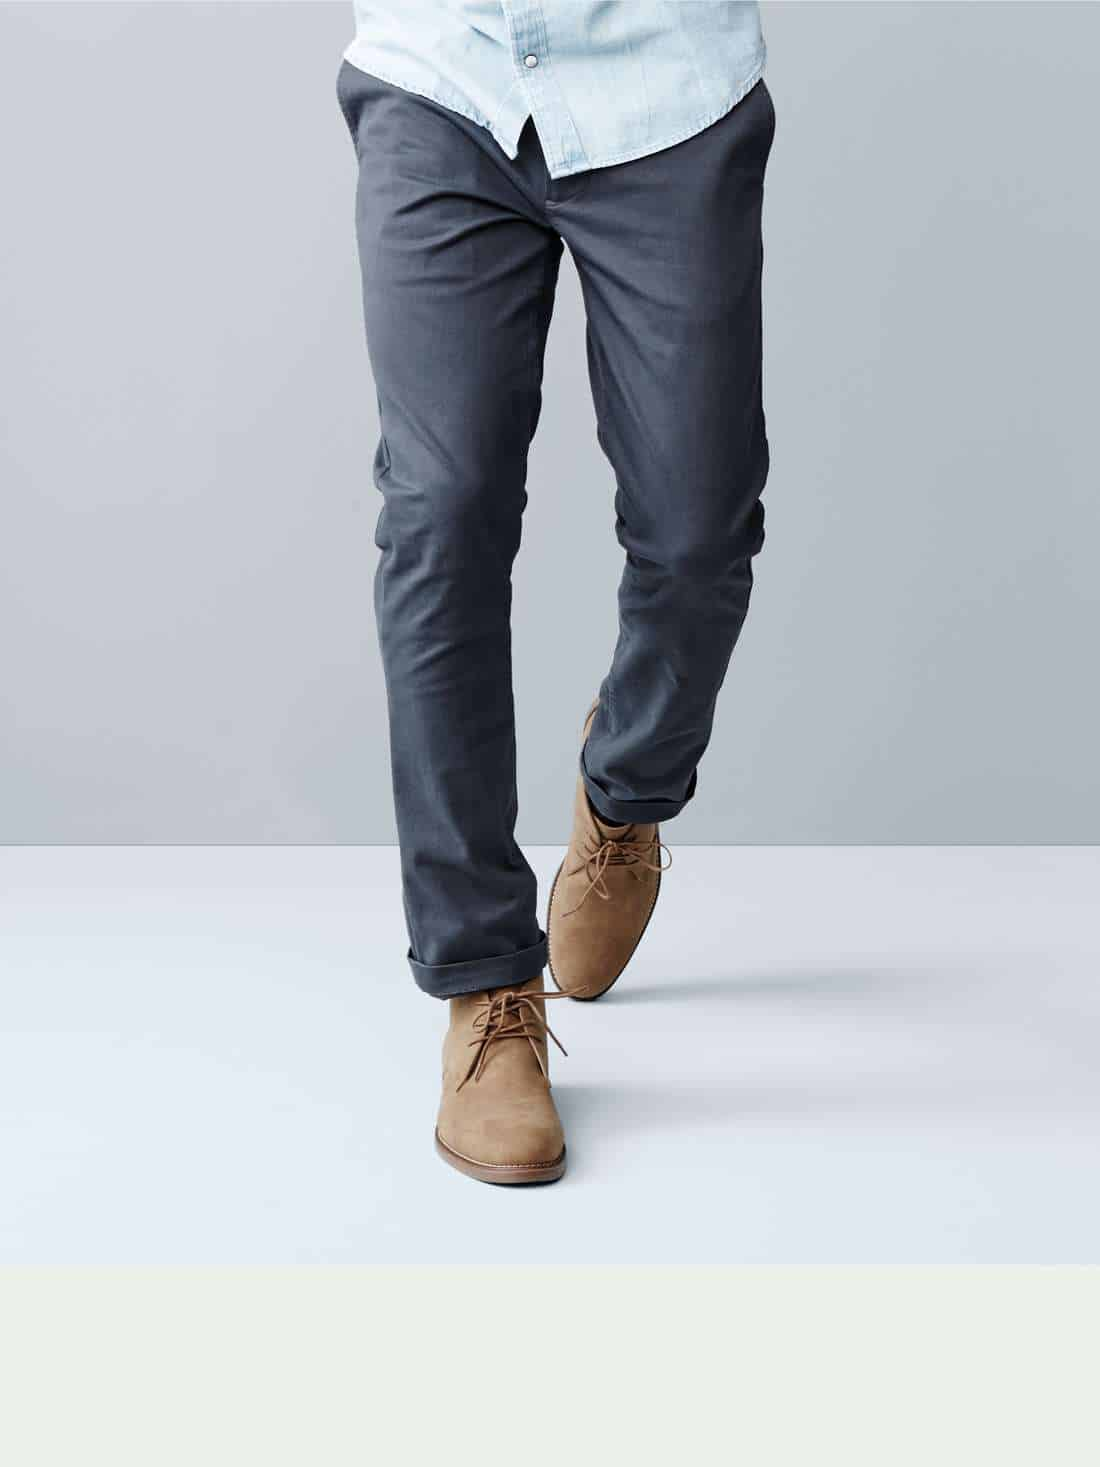 f69534cd2b6 Target s New Men s Line Goodfellow   Co.  Fitting Room First ...